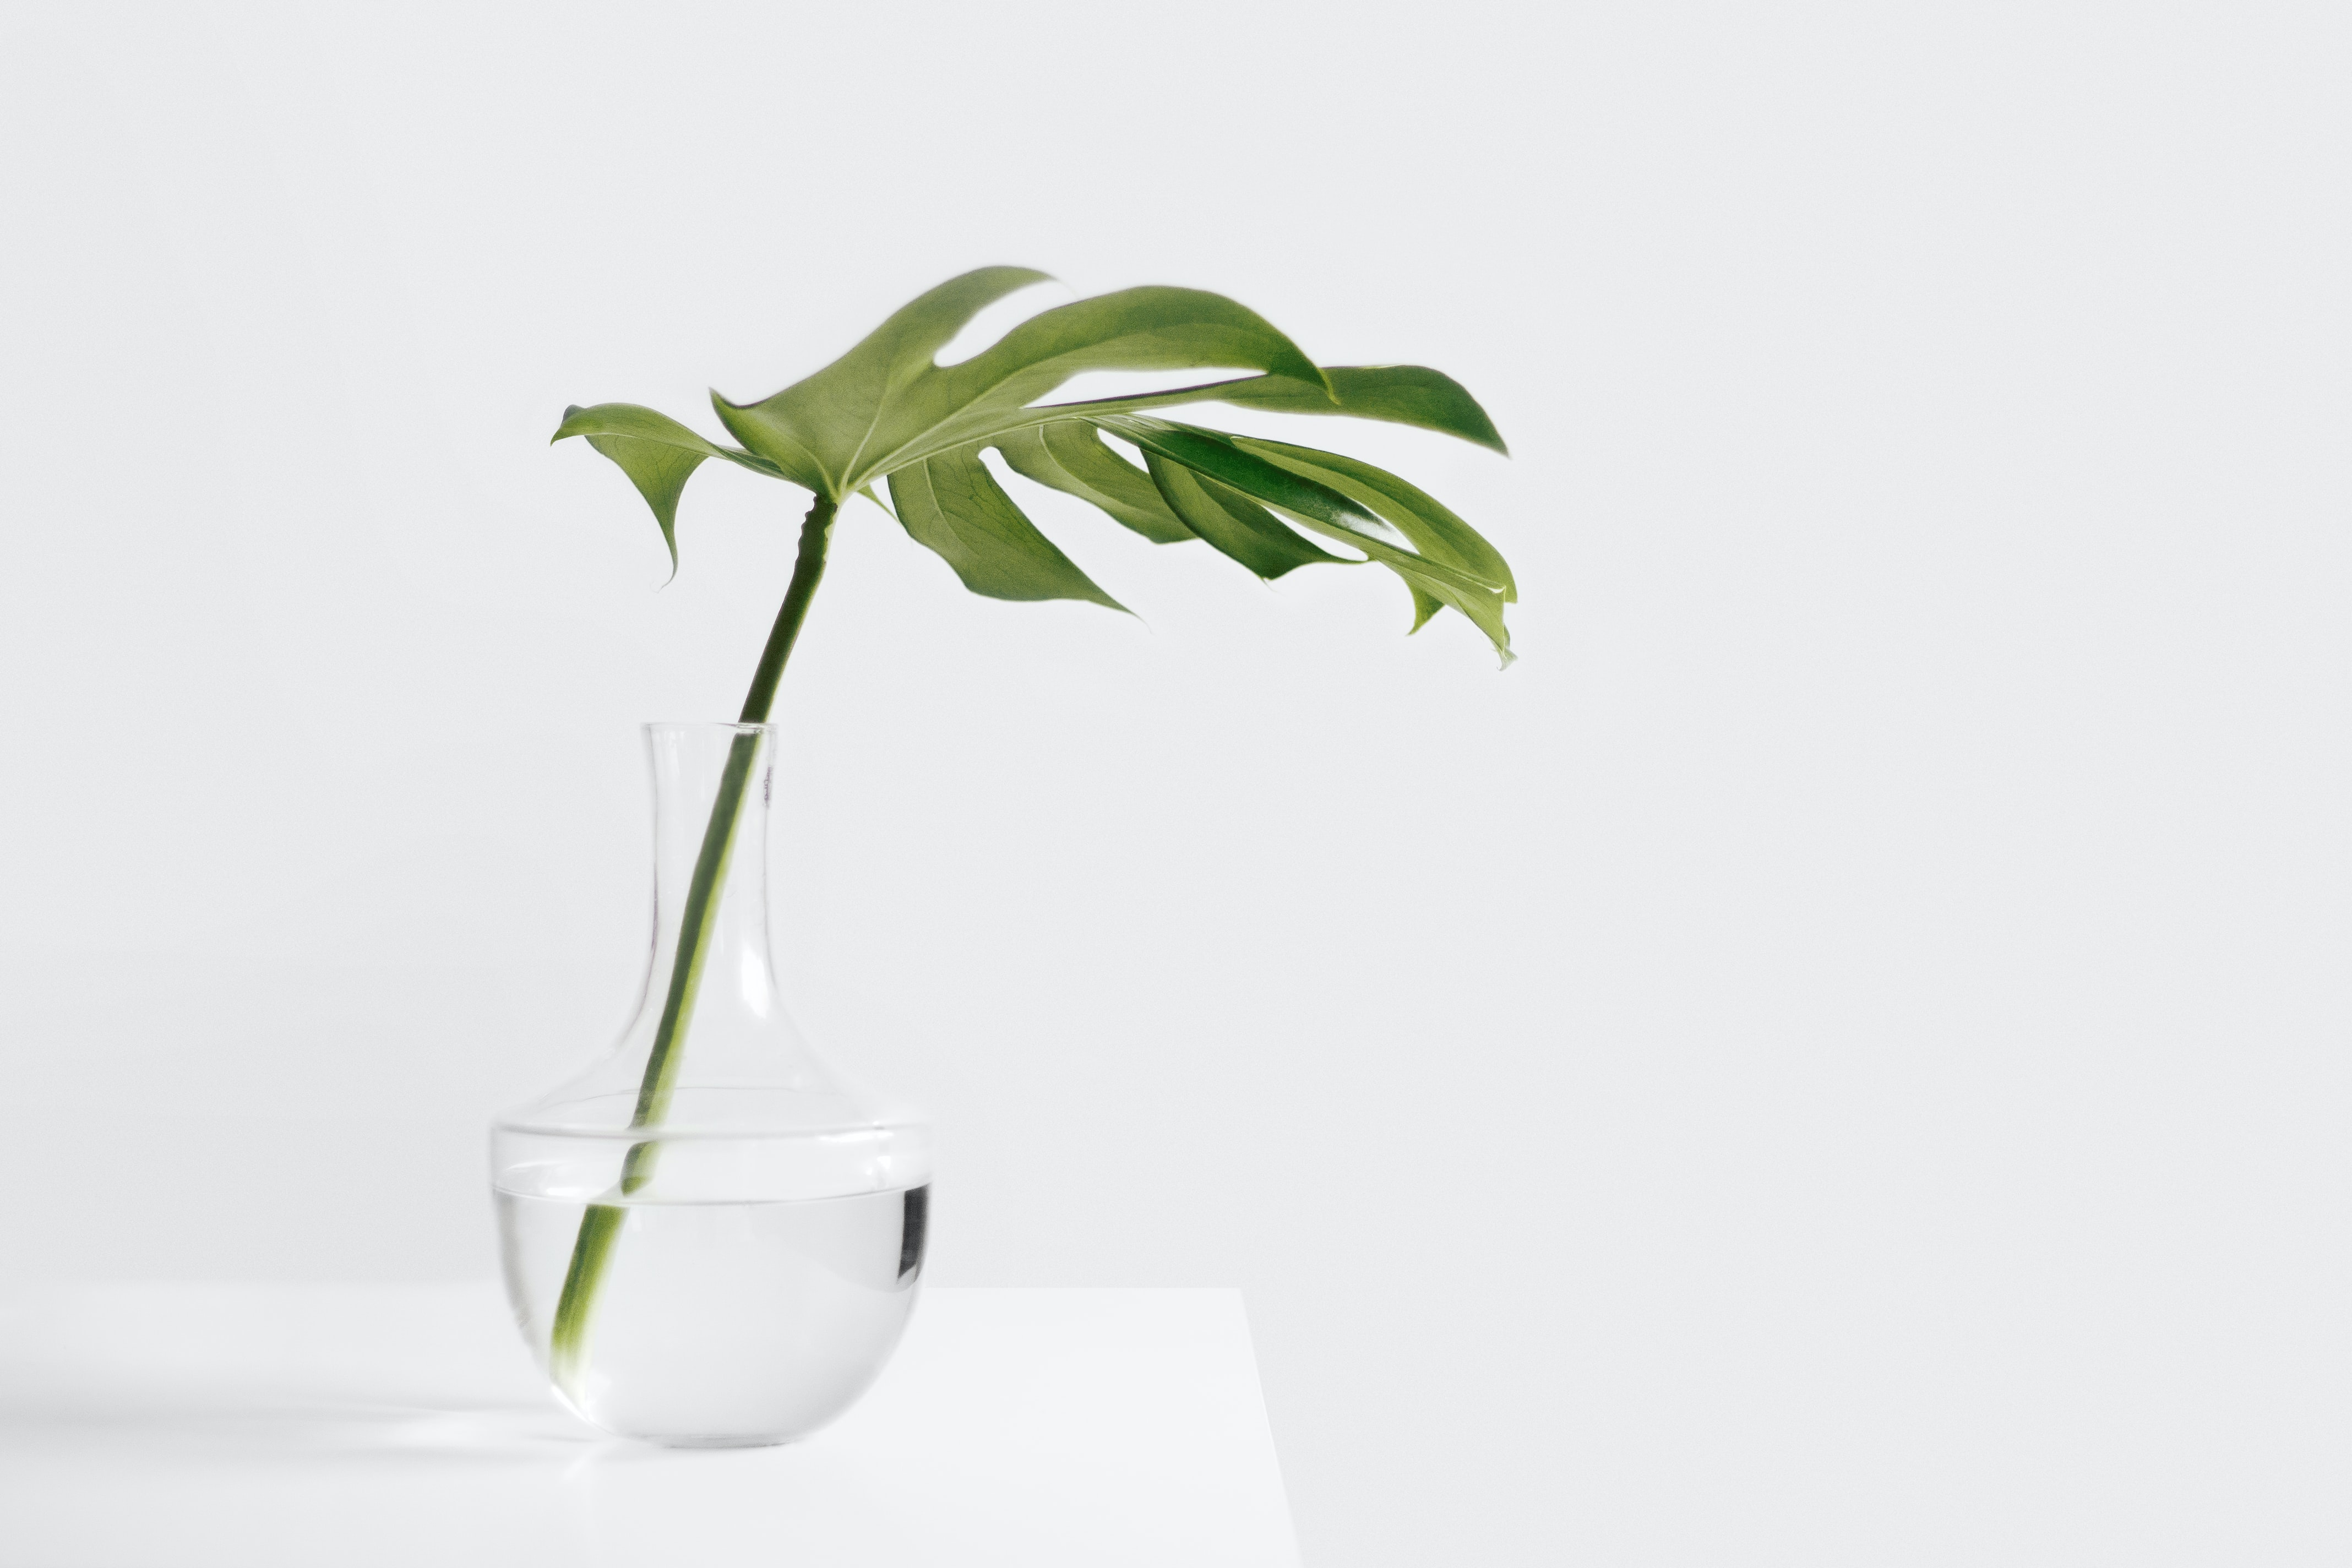 Cheese plant leaf in clear glass vase